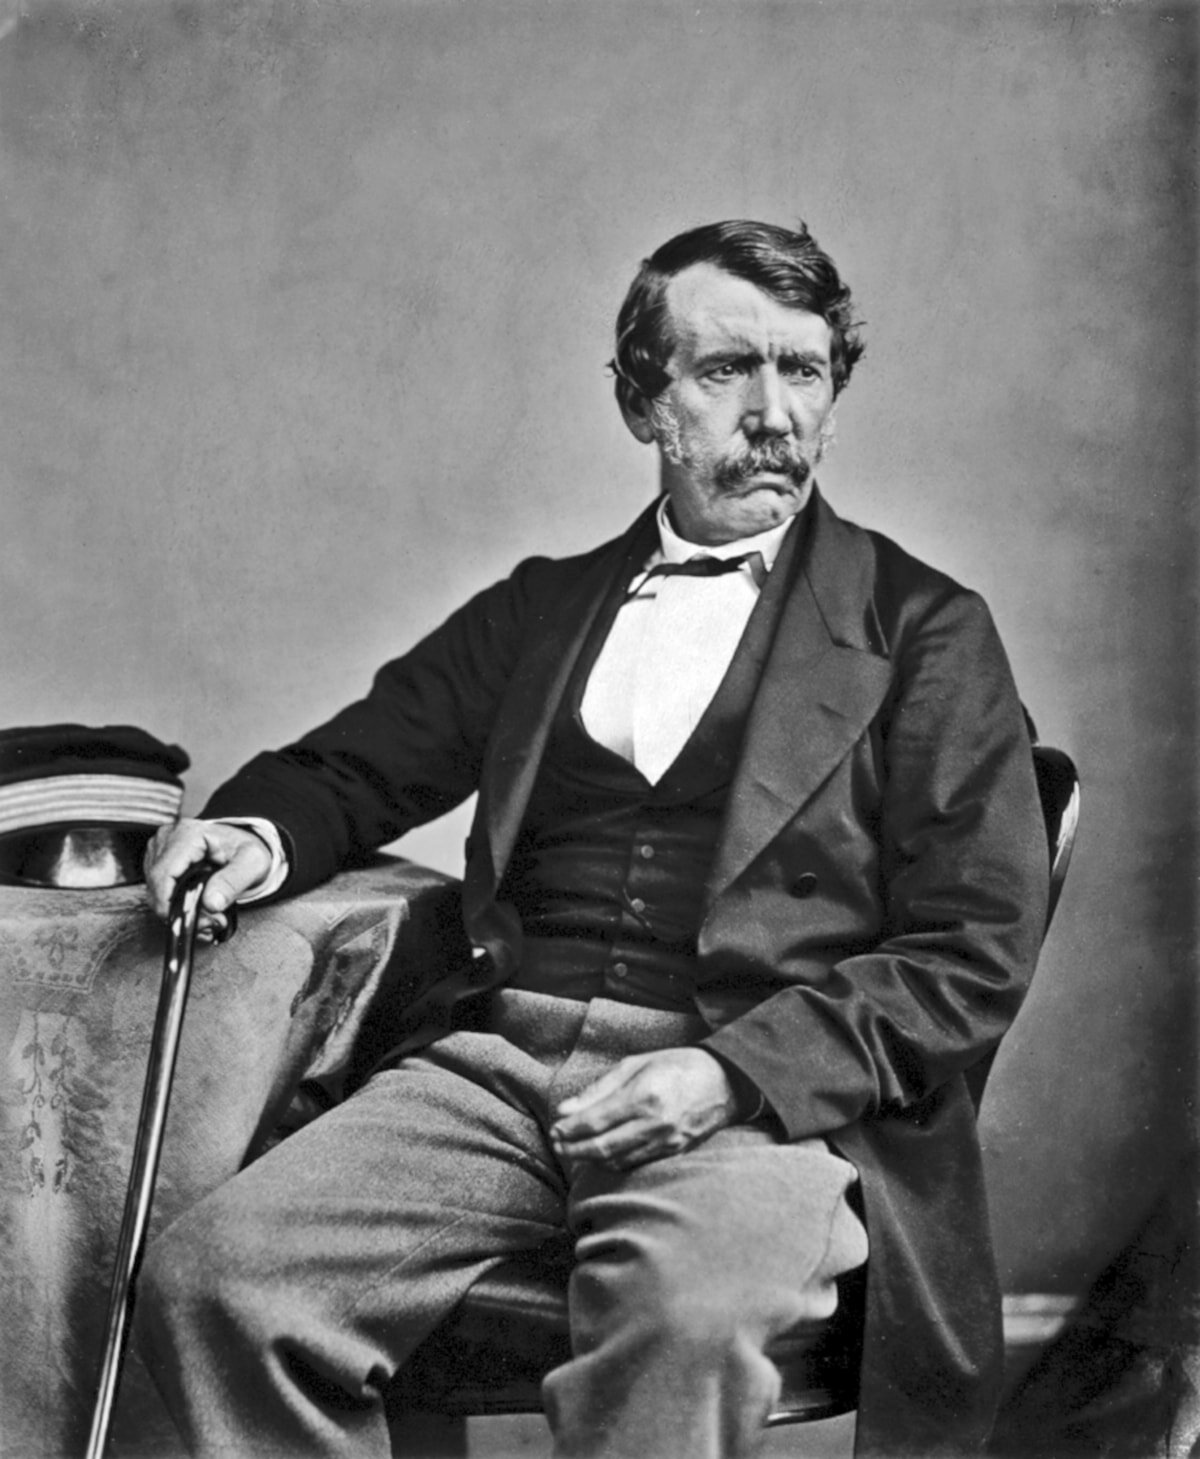 No list of great explorers is complete without David Livingstone!